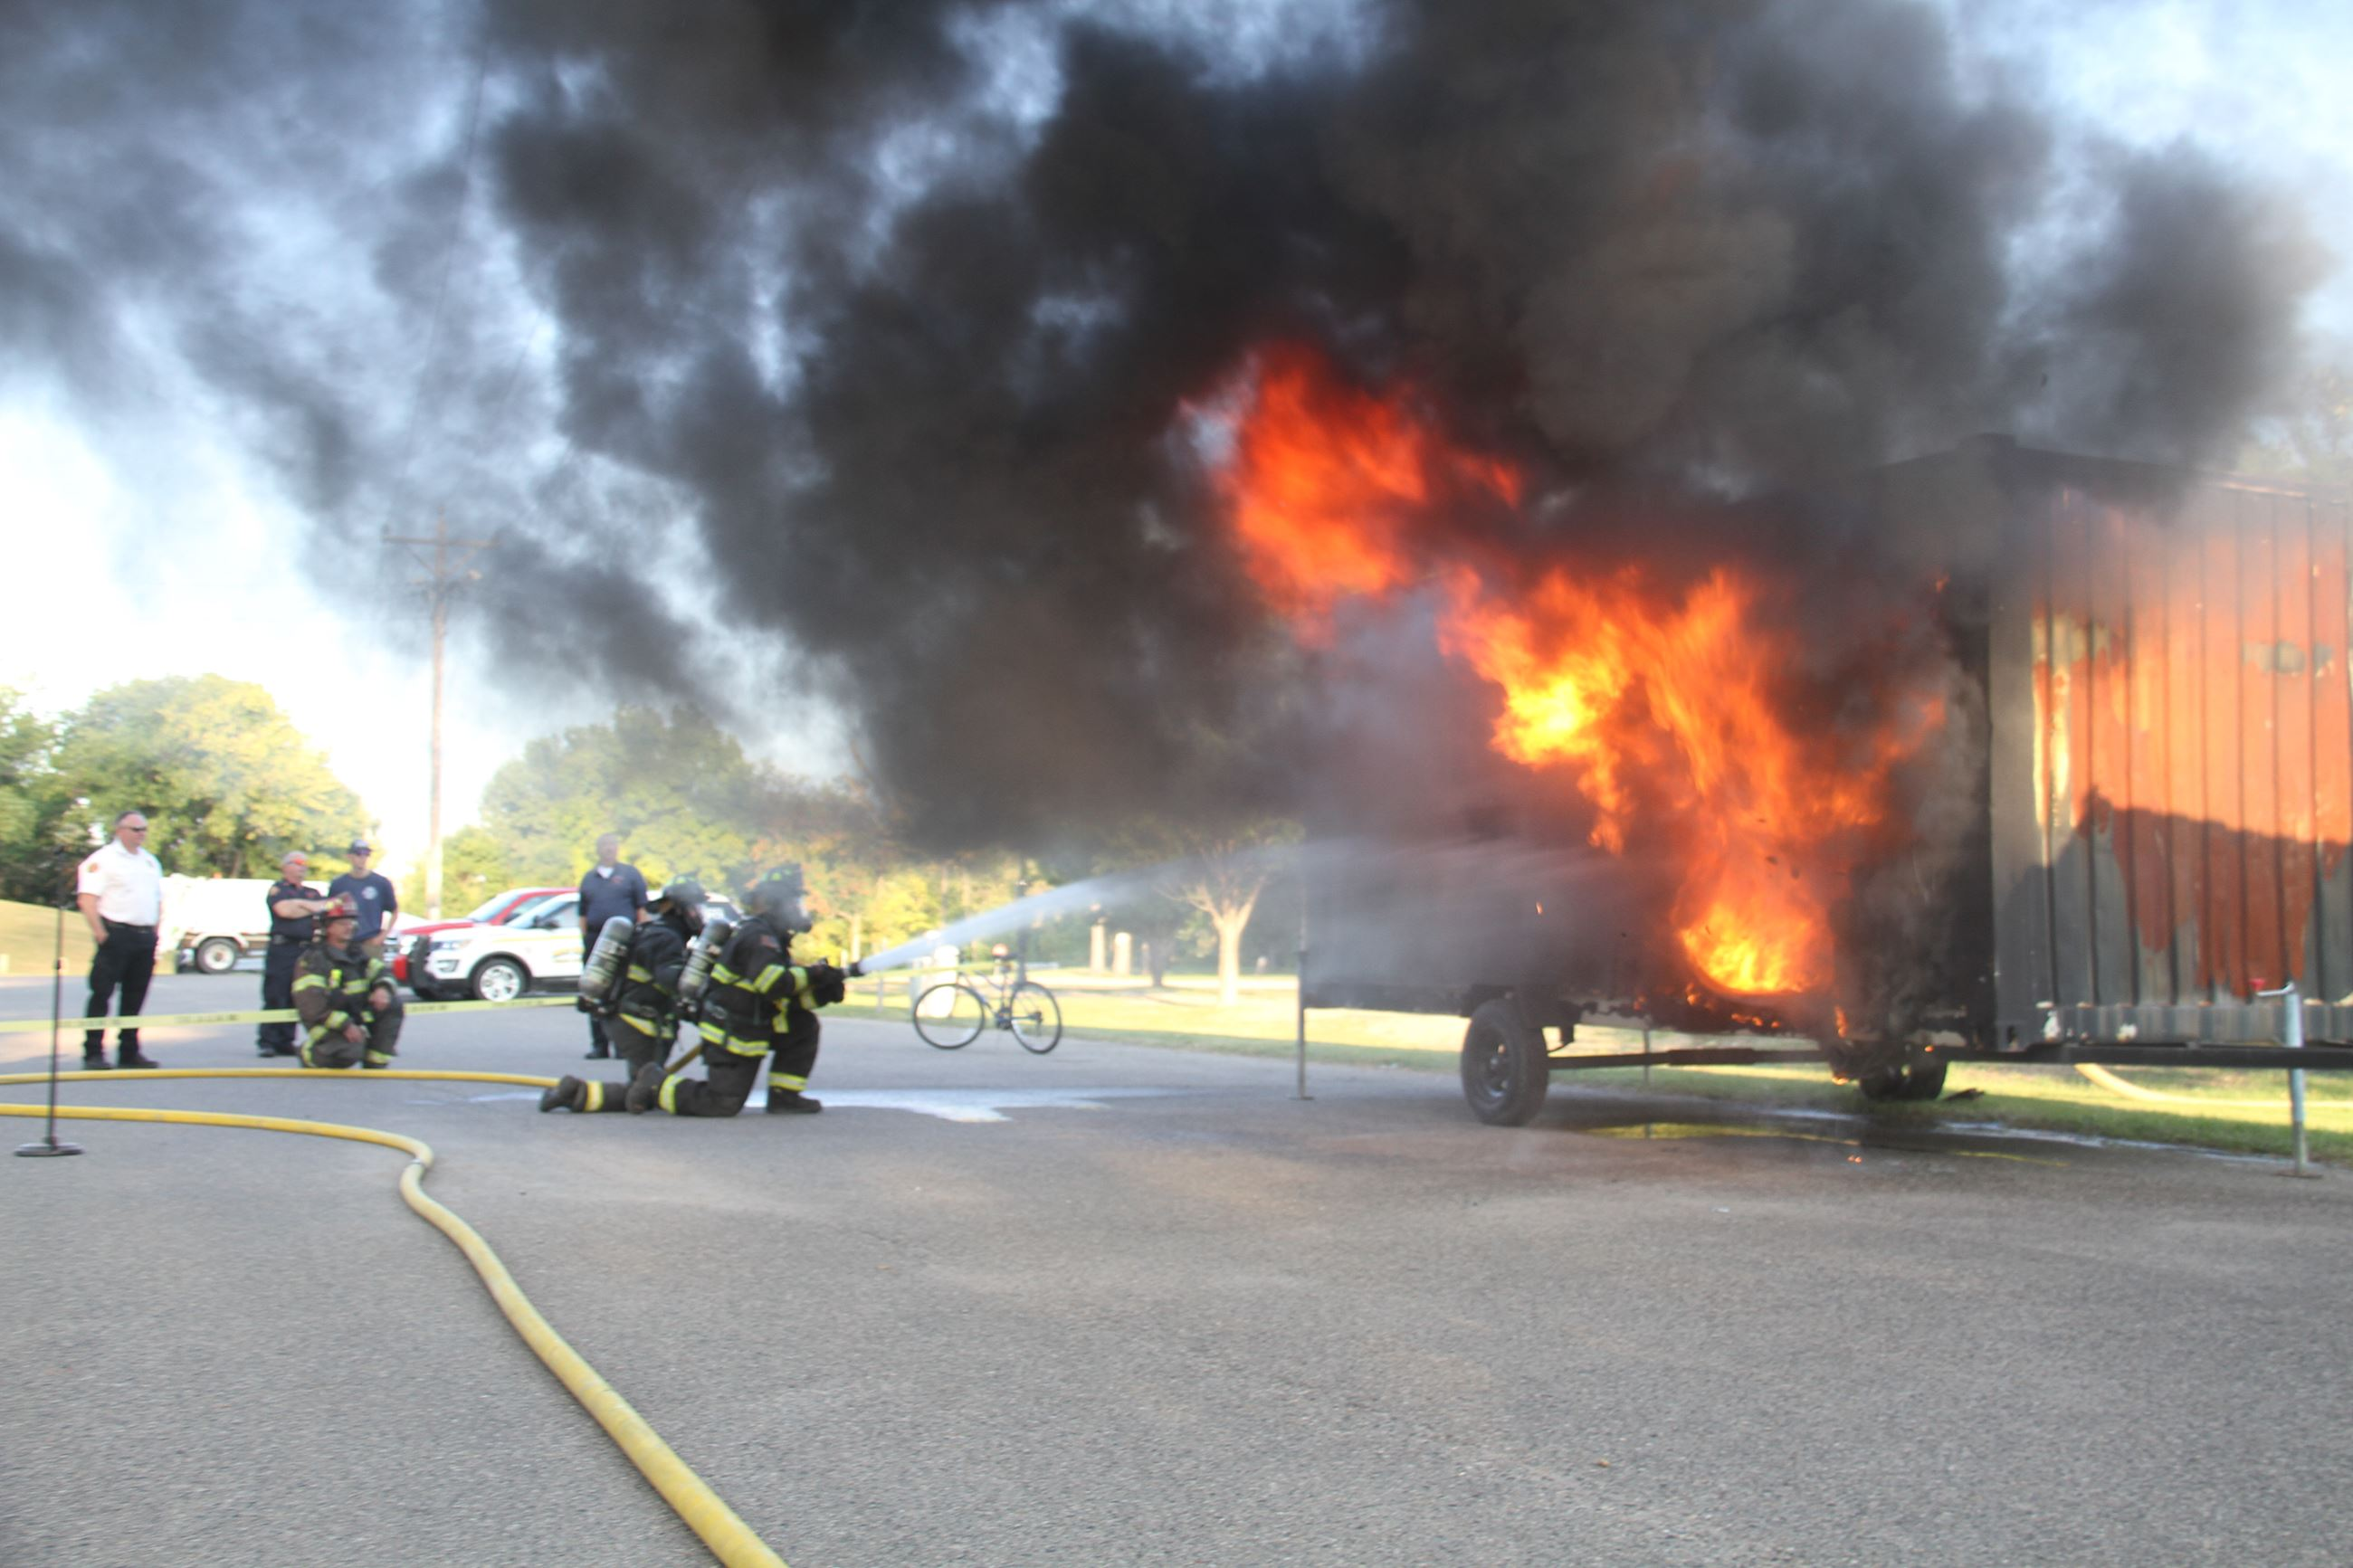 West Fargo Fire Department demonstrates how they put out fires